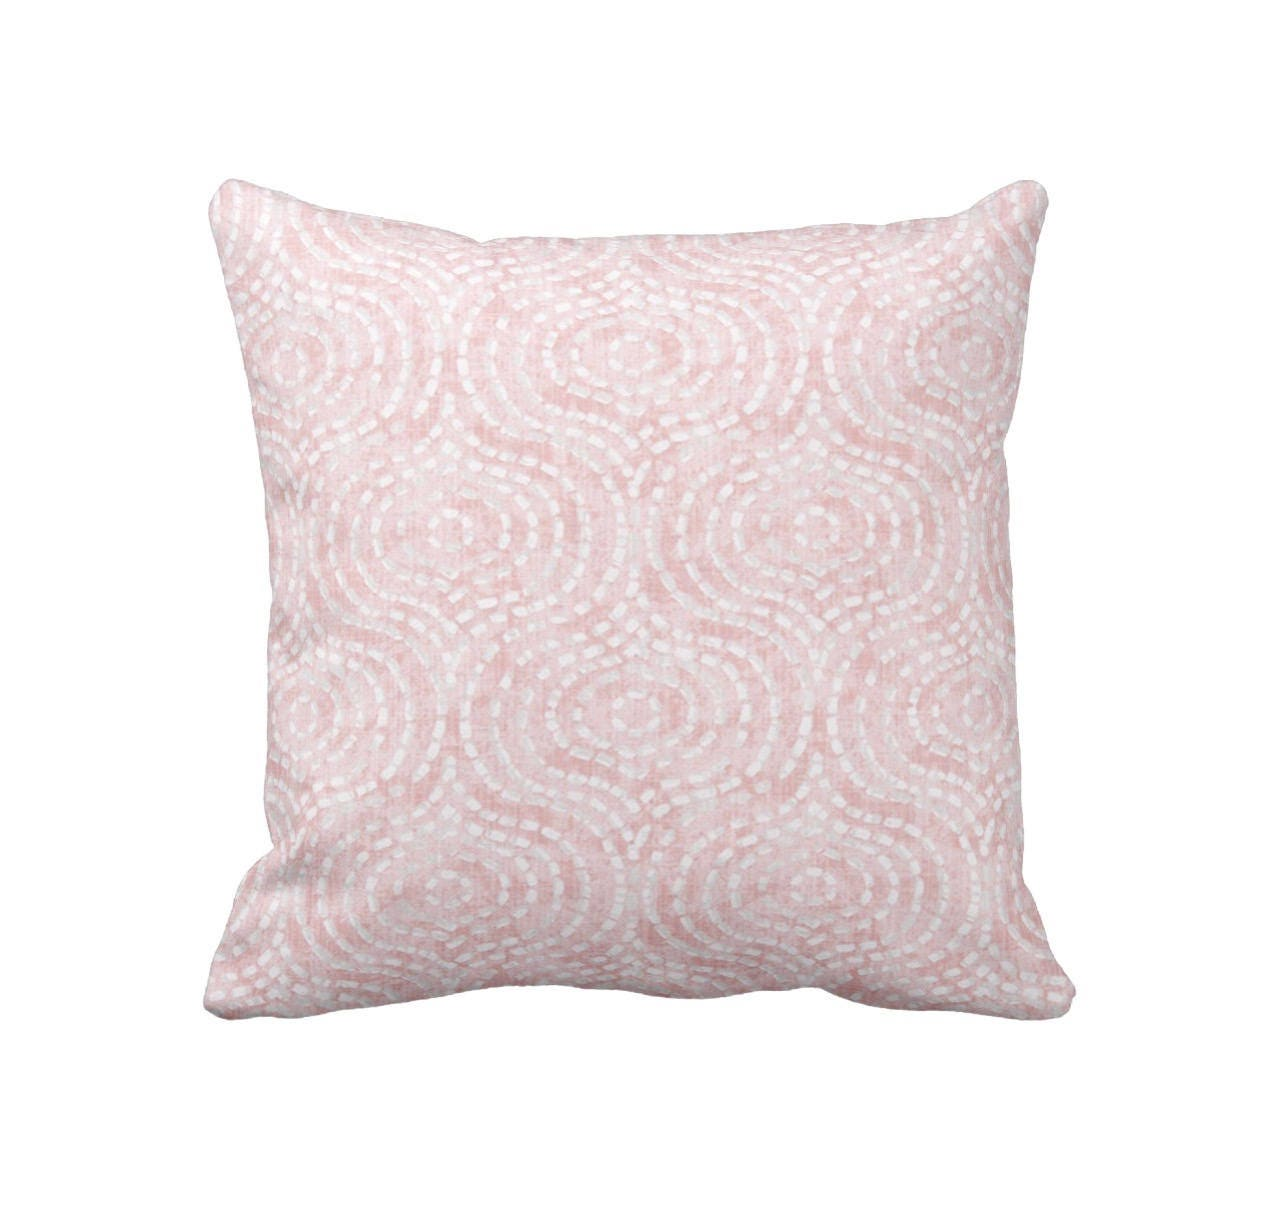 Blush Pink Decorative Pillow : Blush Pink Pillow Cover Decorative Pillow Cover Decorative